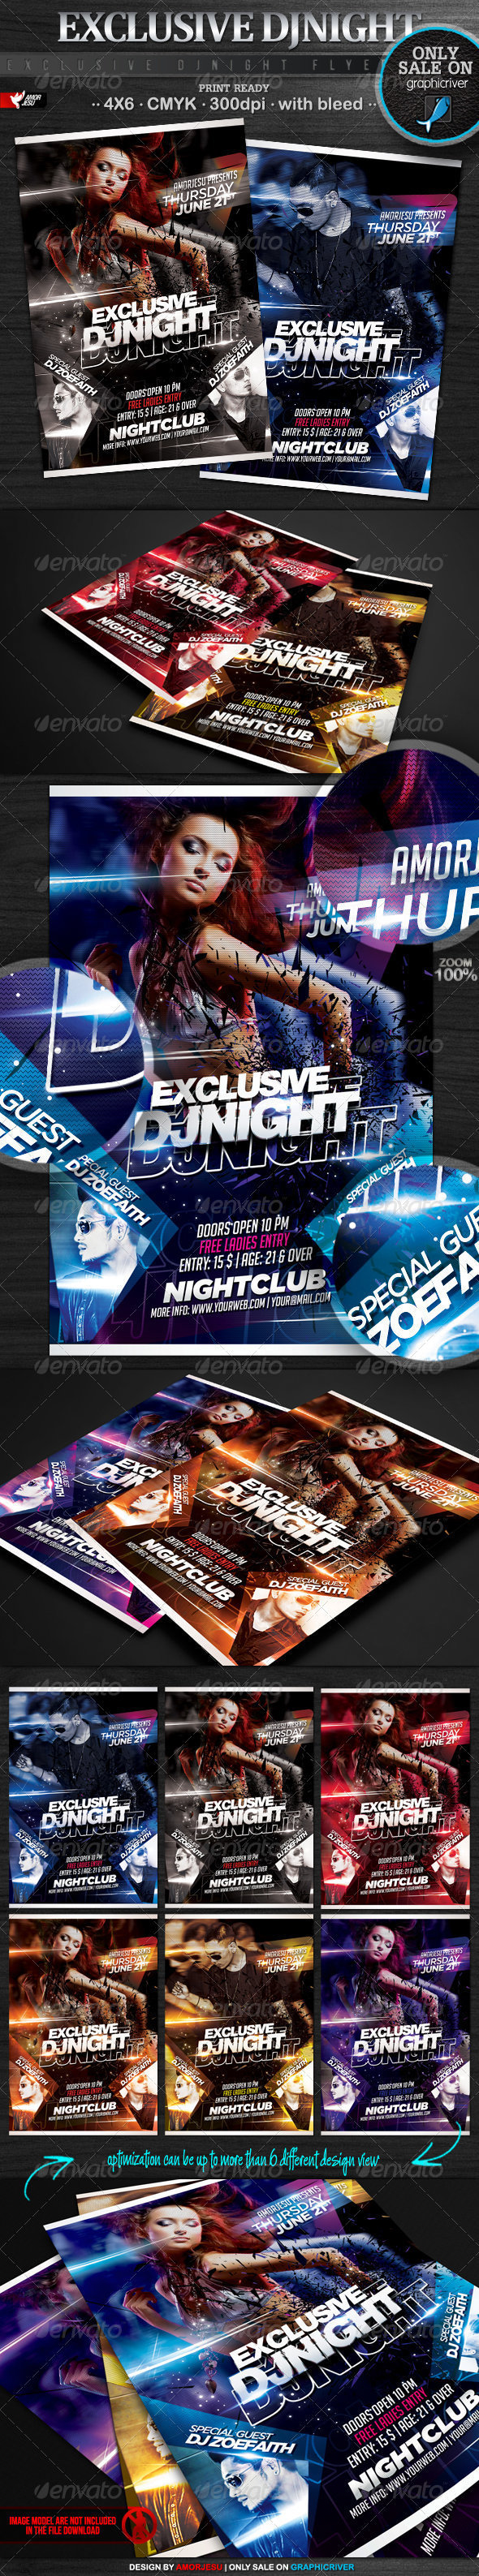 Exclusive DJ Flyer Template - Clubs & Parties Events